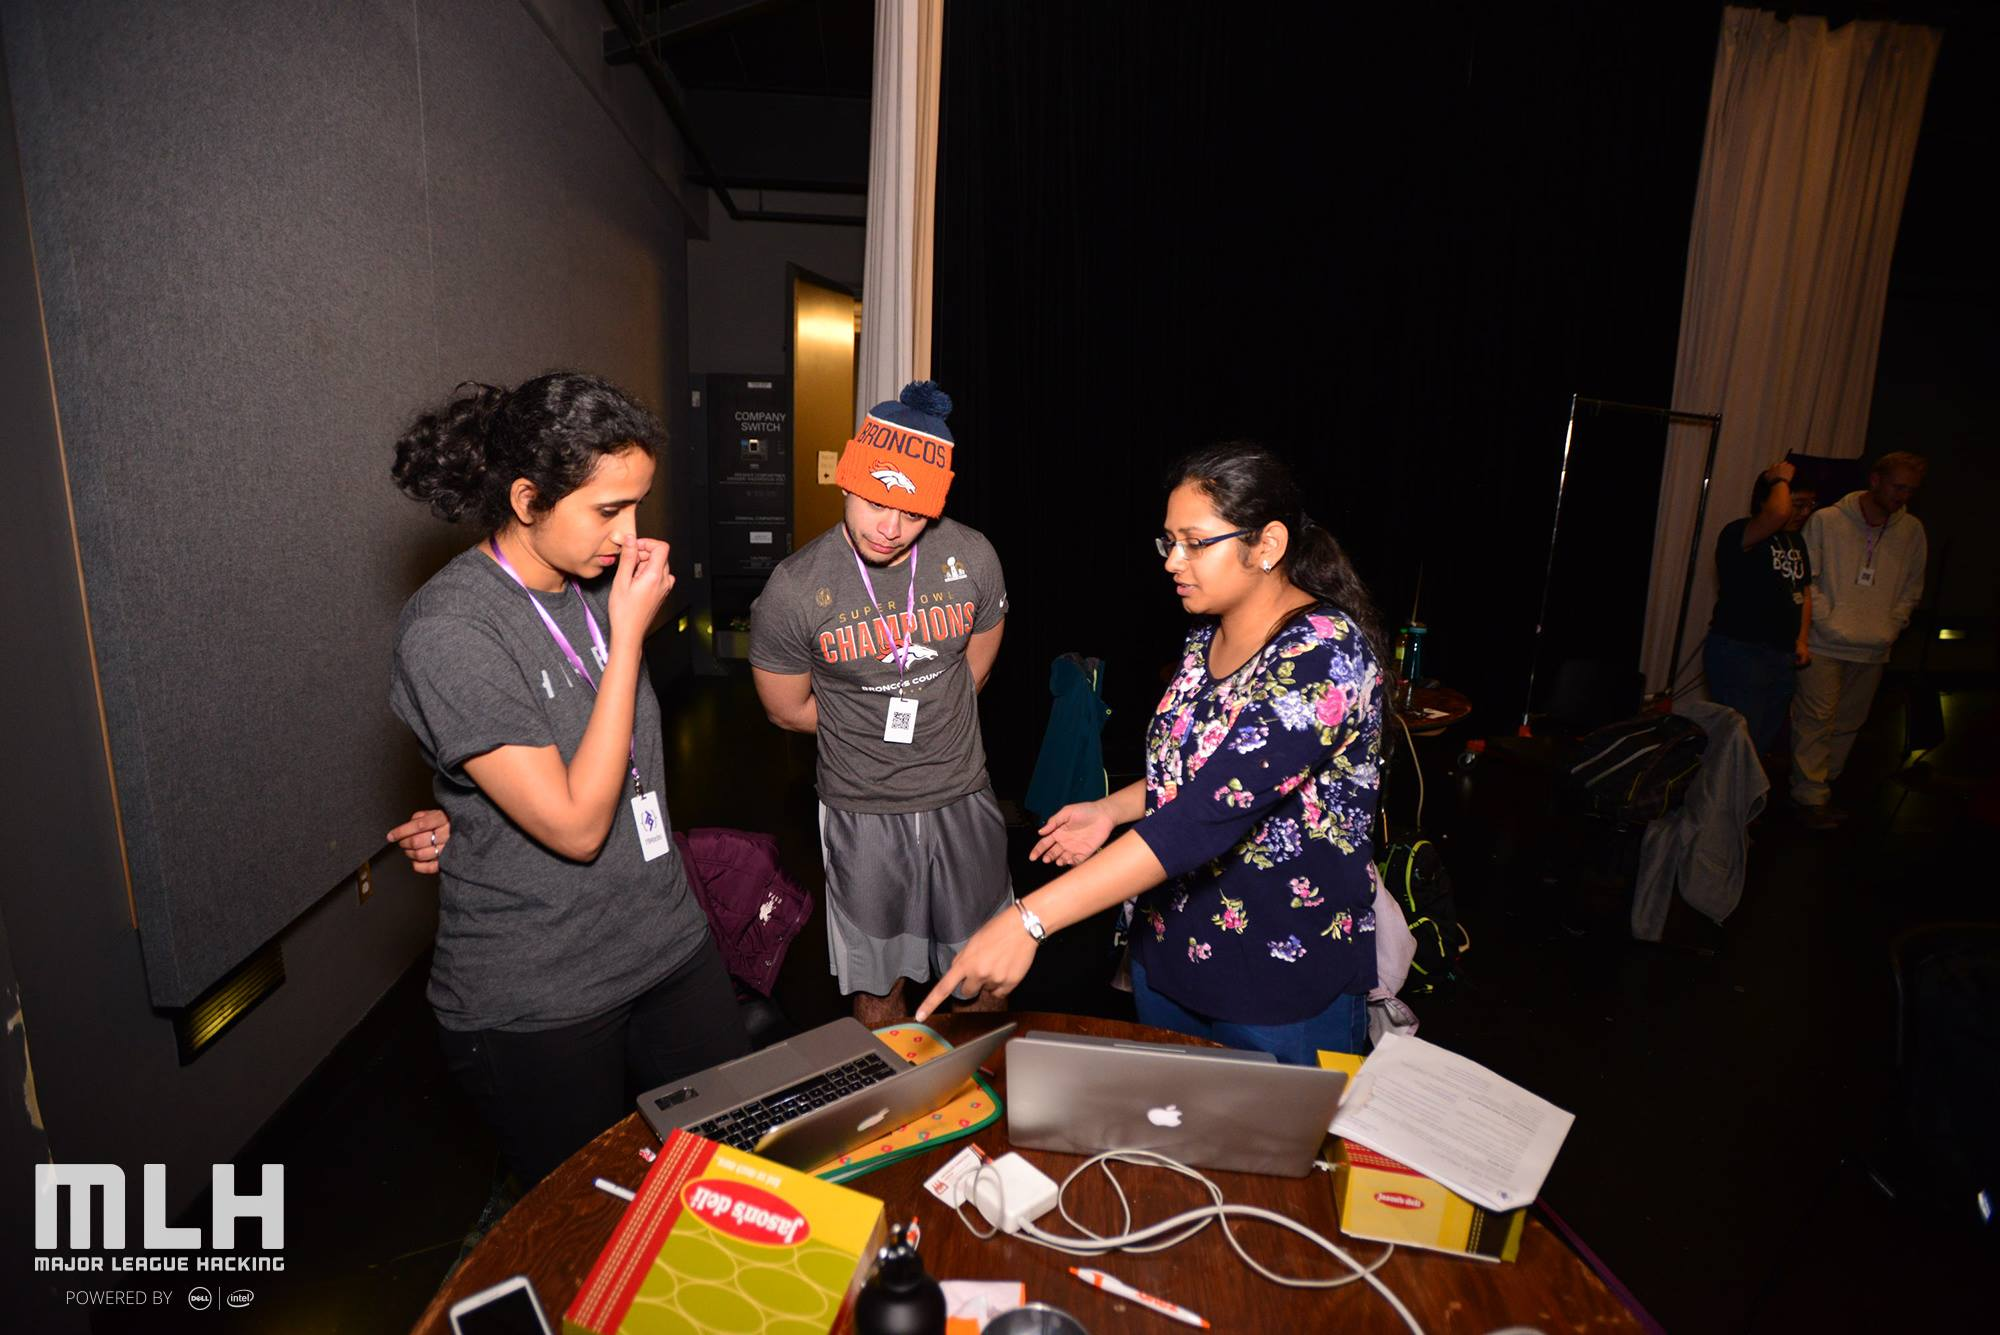 Photos of T9Hackers demoing their projects.